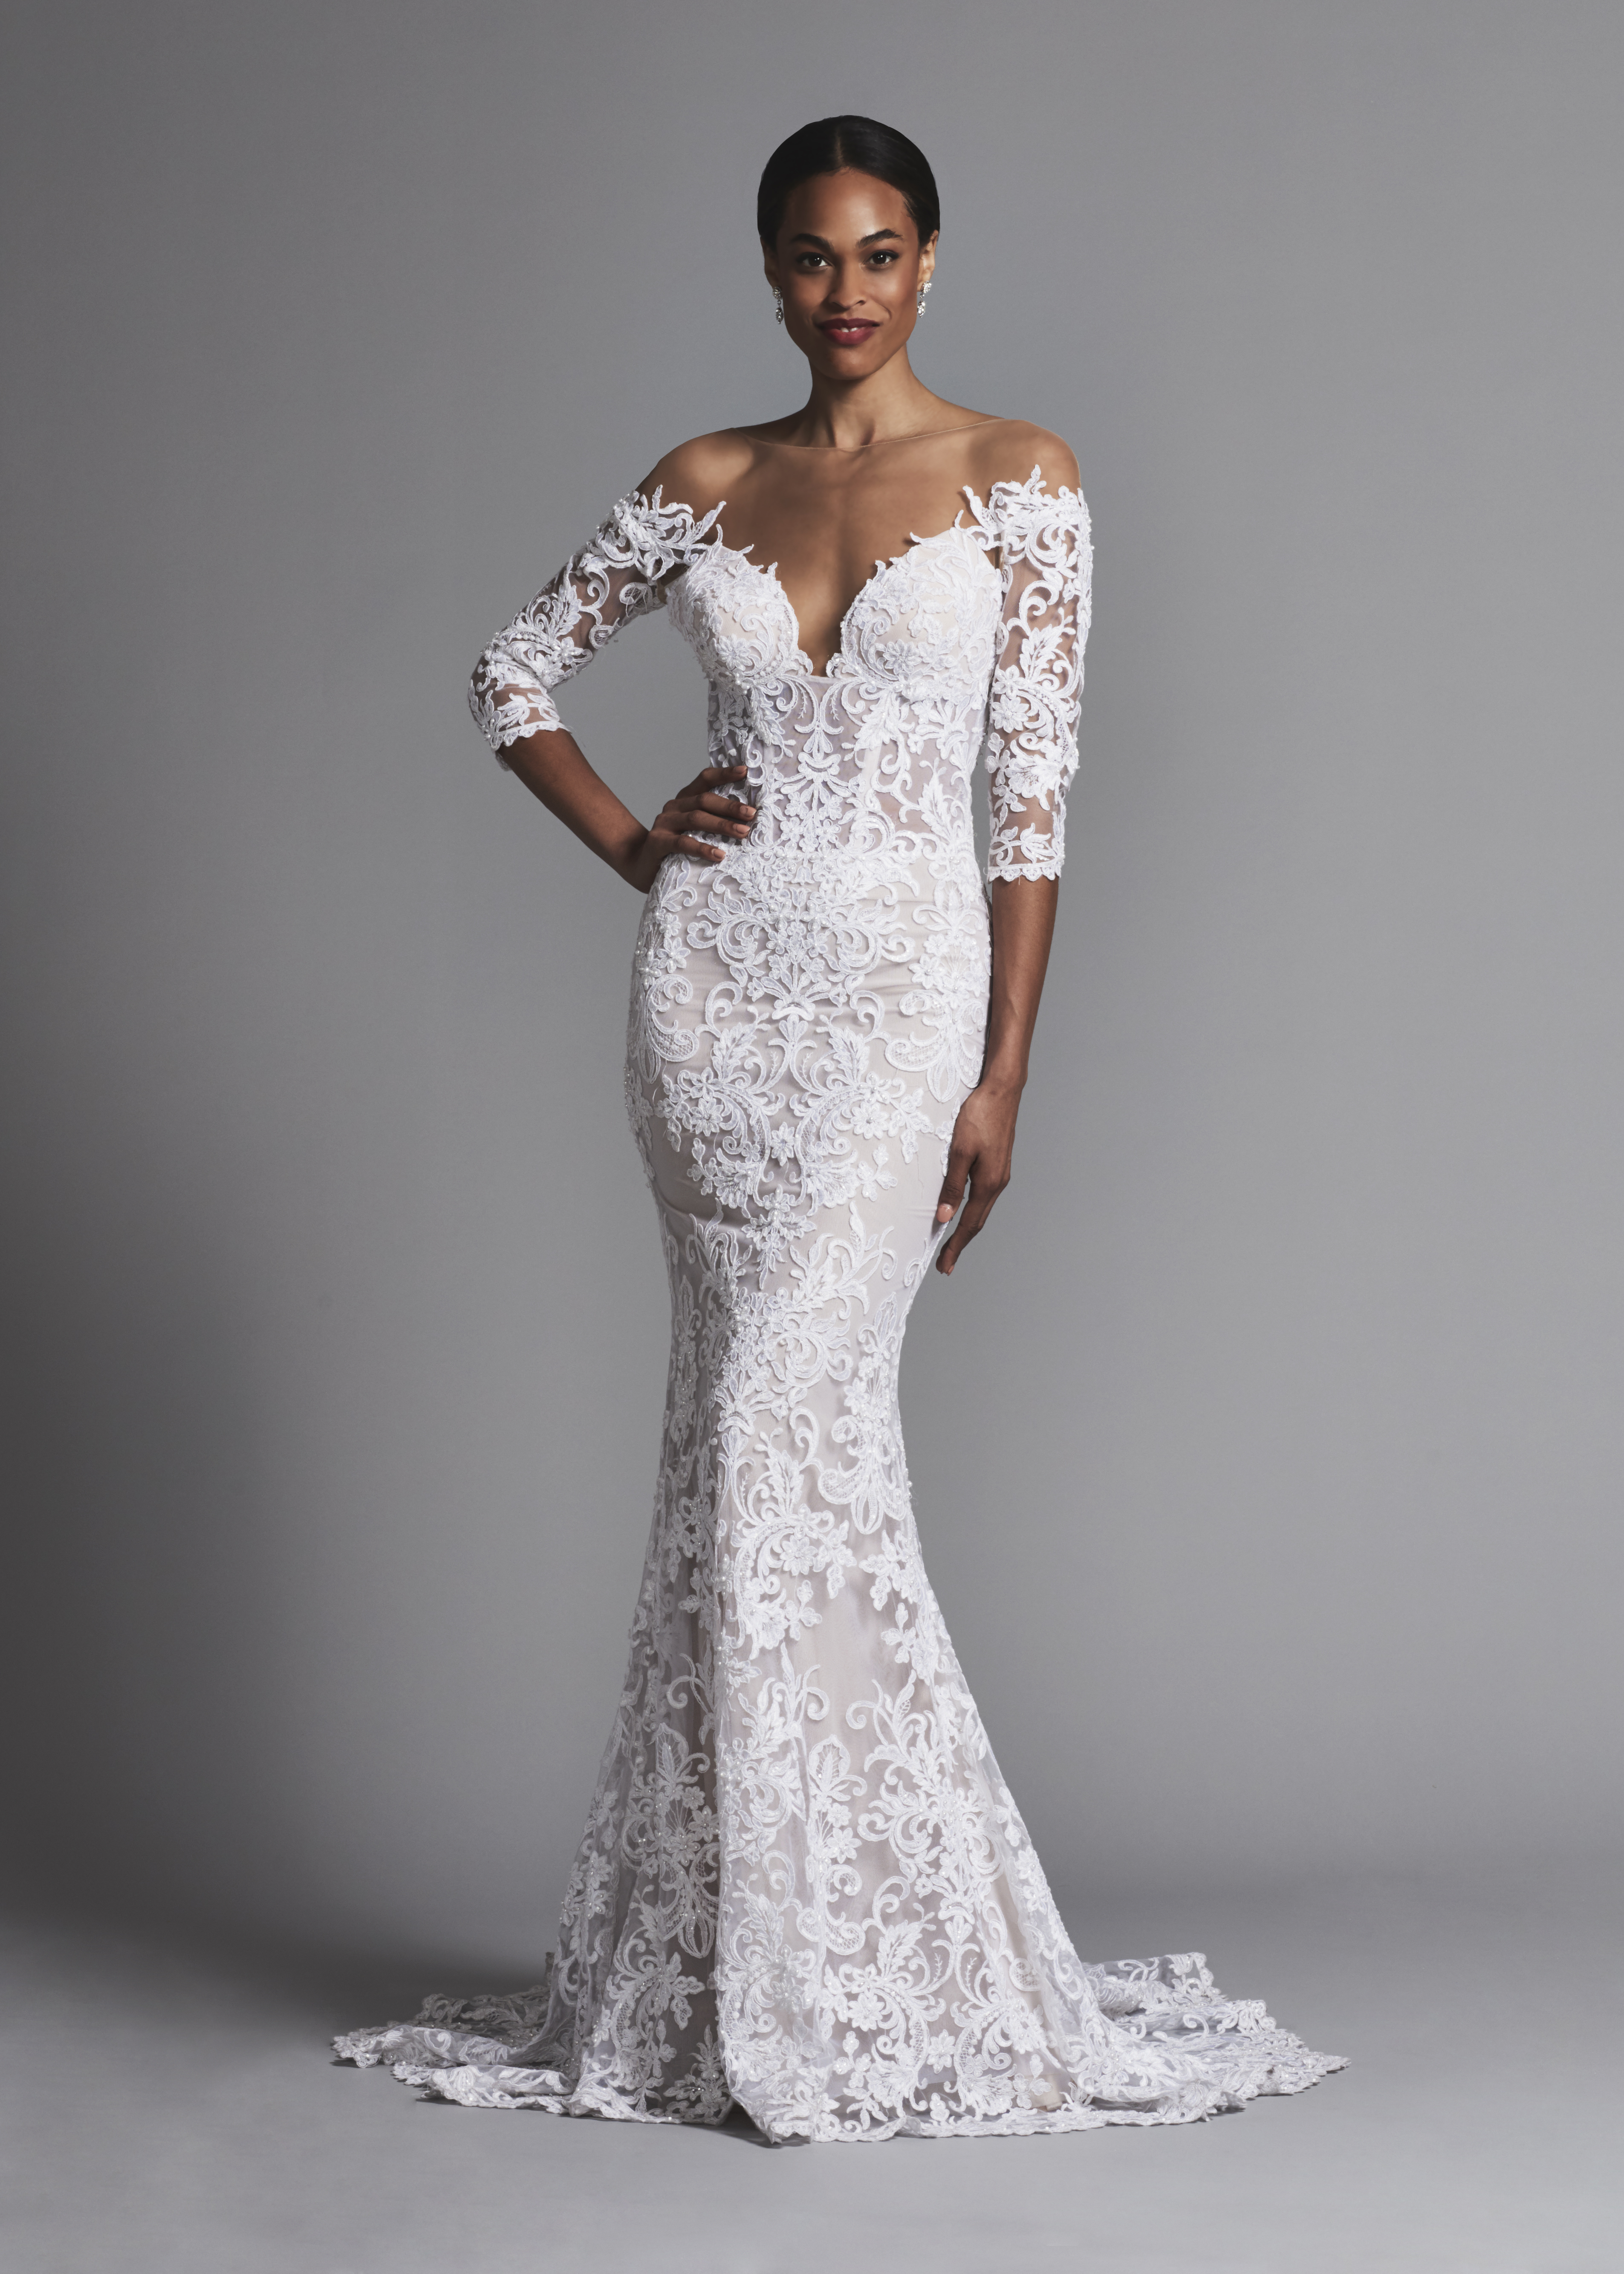 All Lace Wedding Dresses with Sleeves